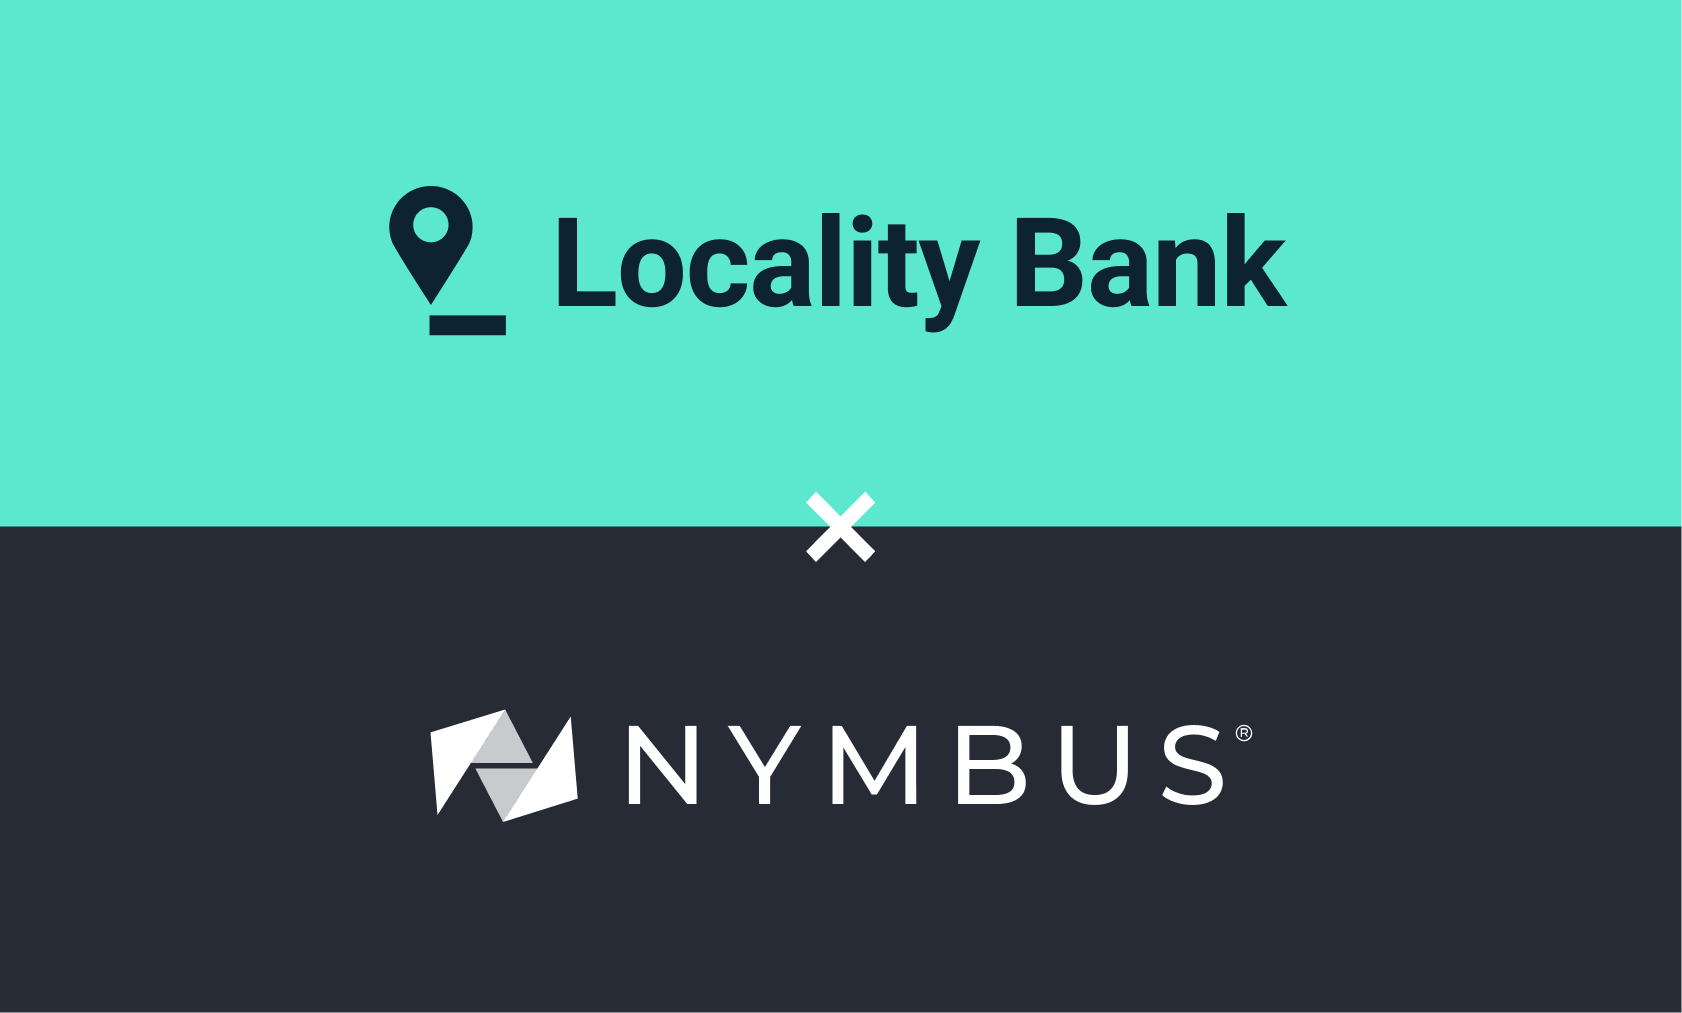 Locality Bank IO Partners With NYMBUS to Create & Grow Digital-First De Novo That Empowers Community Businesses